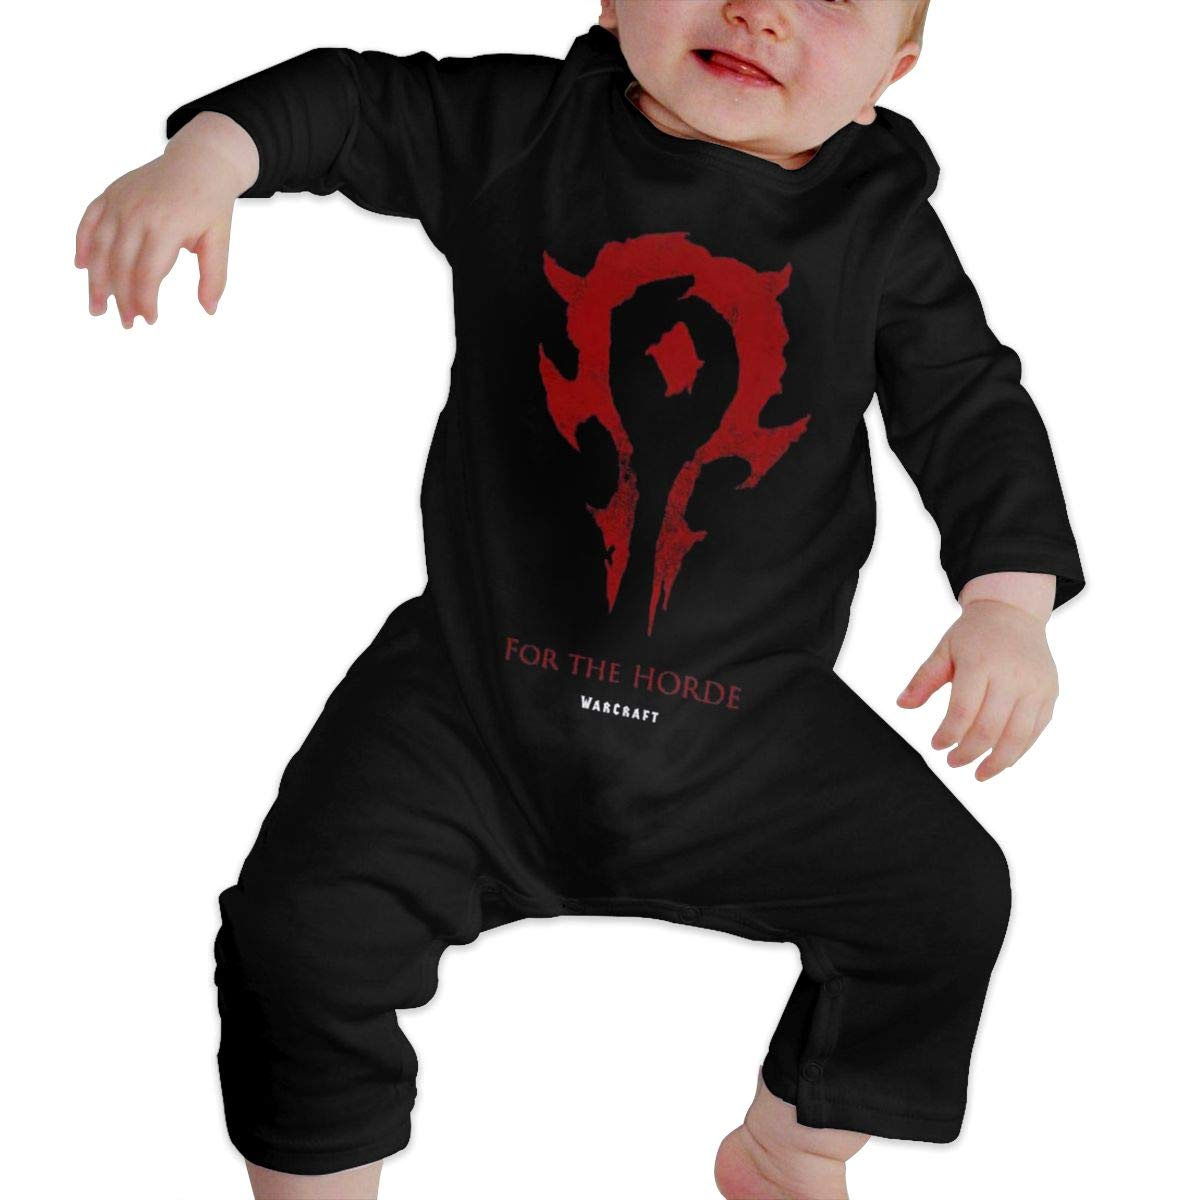 Kids Baby Long Sleeve Romper for-The-Horde-Warcraft Unisex Cotton Cute Jumpsuit Baby Crawler Clothes